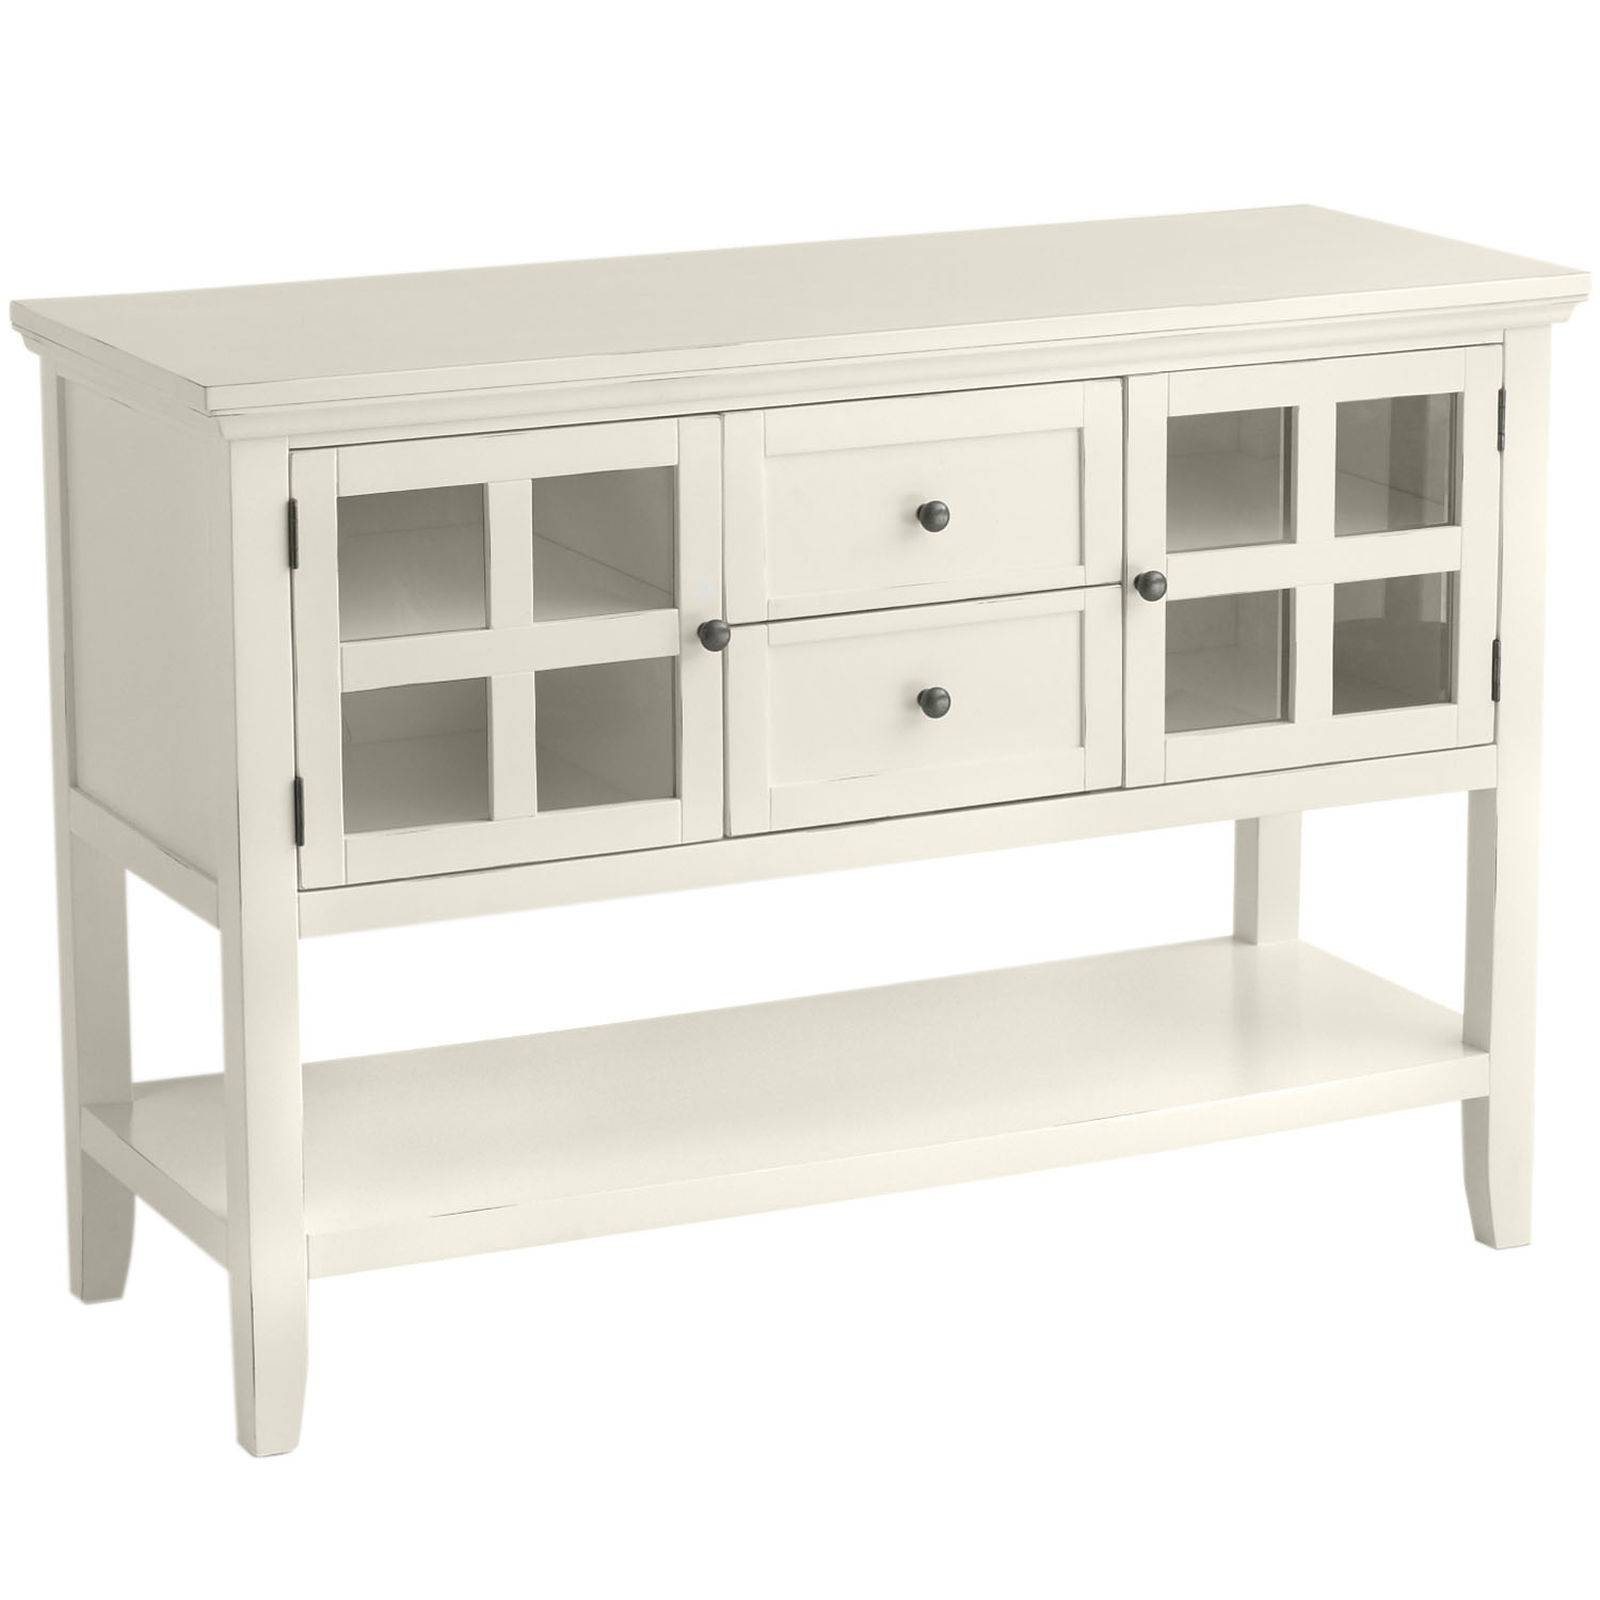 Sideboards. Inspiring Narrow Buffet Table: Narrow-Buffet-Table with regard to Narrow White Sideboards (Image 21 of 30)